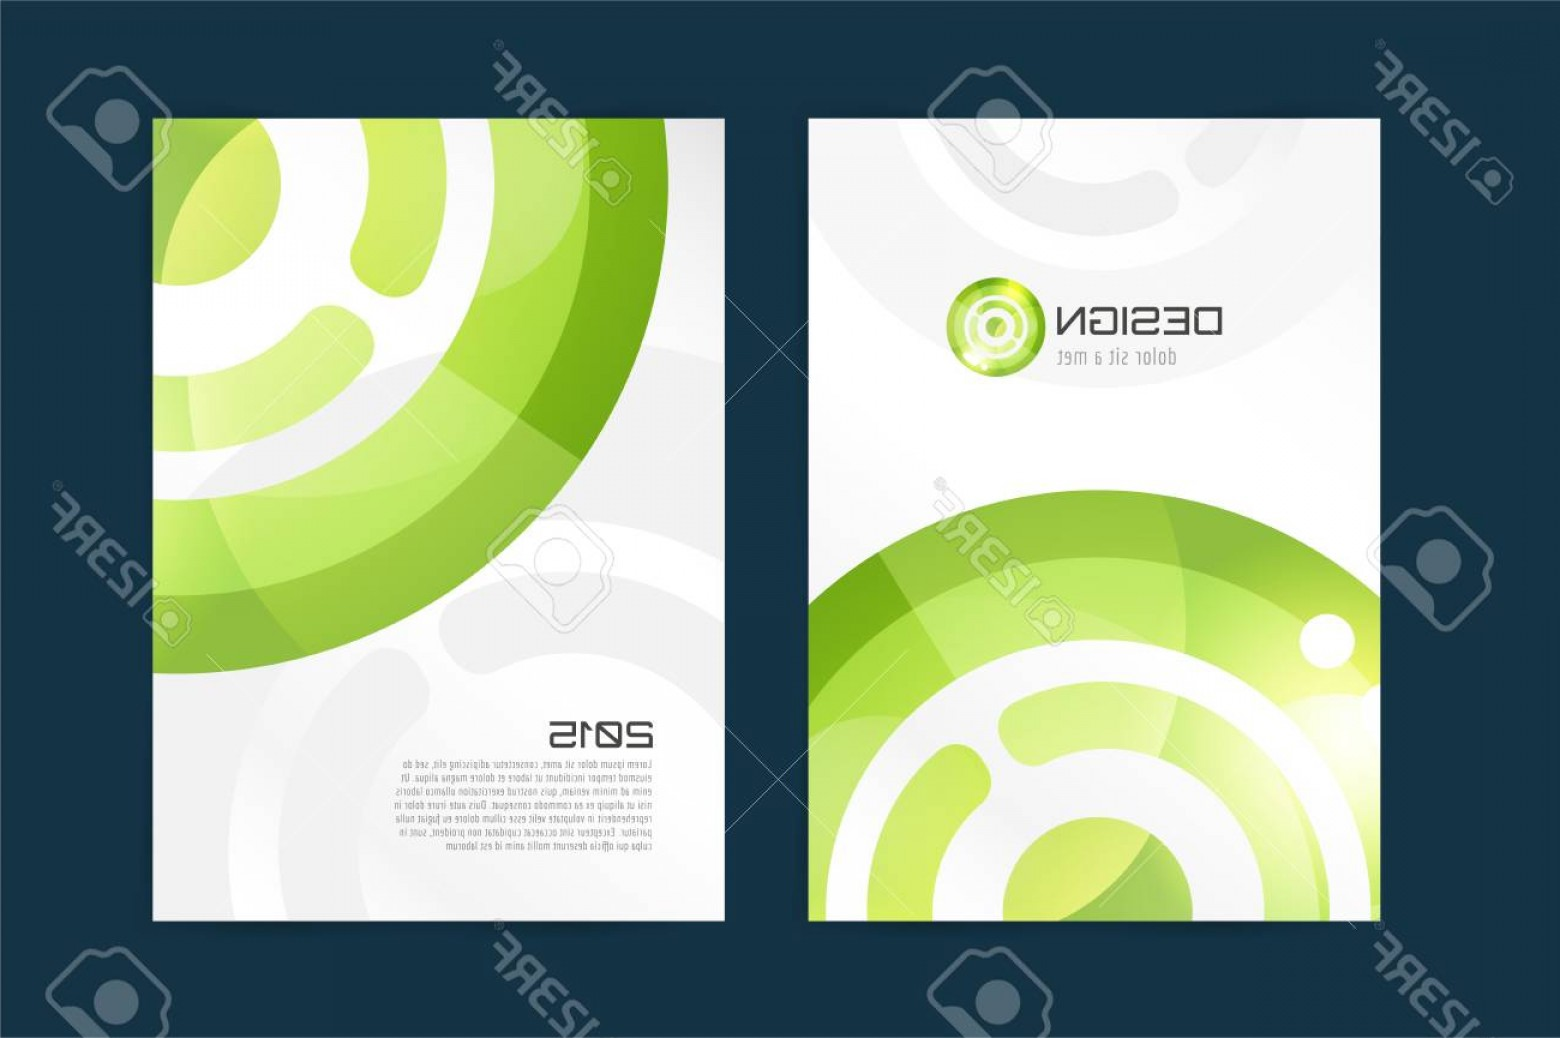 Vector Brochure Cover Designs: Photostock Vector Vector Brochure Template Abstract Design And Creative Magazine Idea Blank Book Cover Or Banner Templ